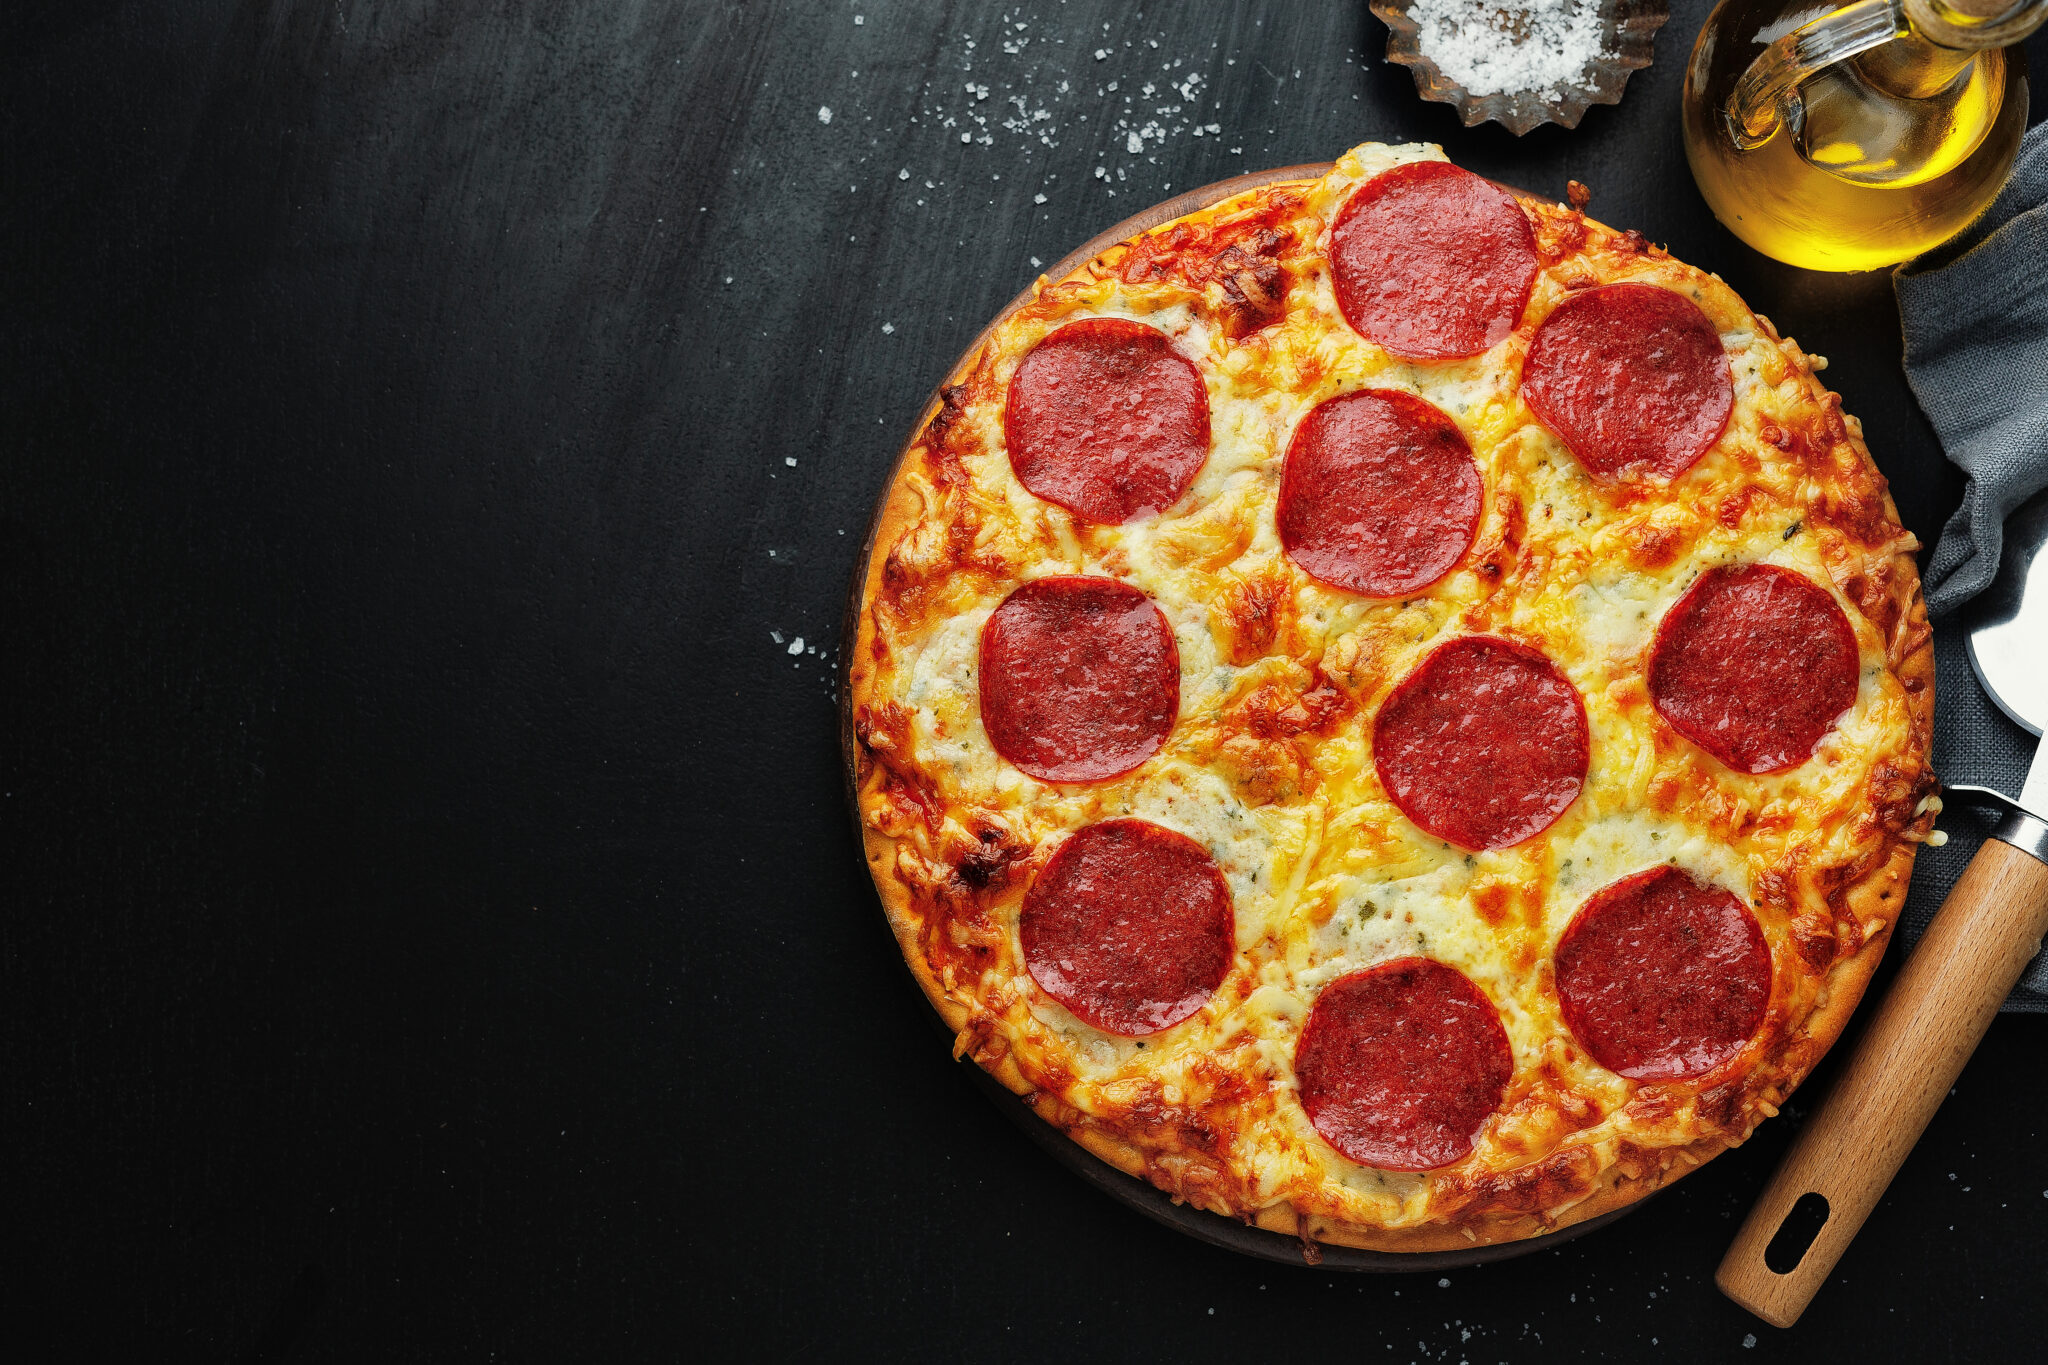 pizza with salami and cheese on pizza box D2UQL8Q